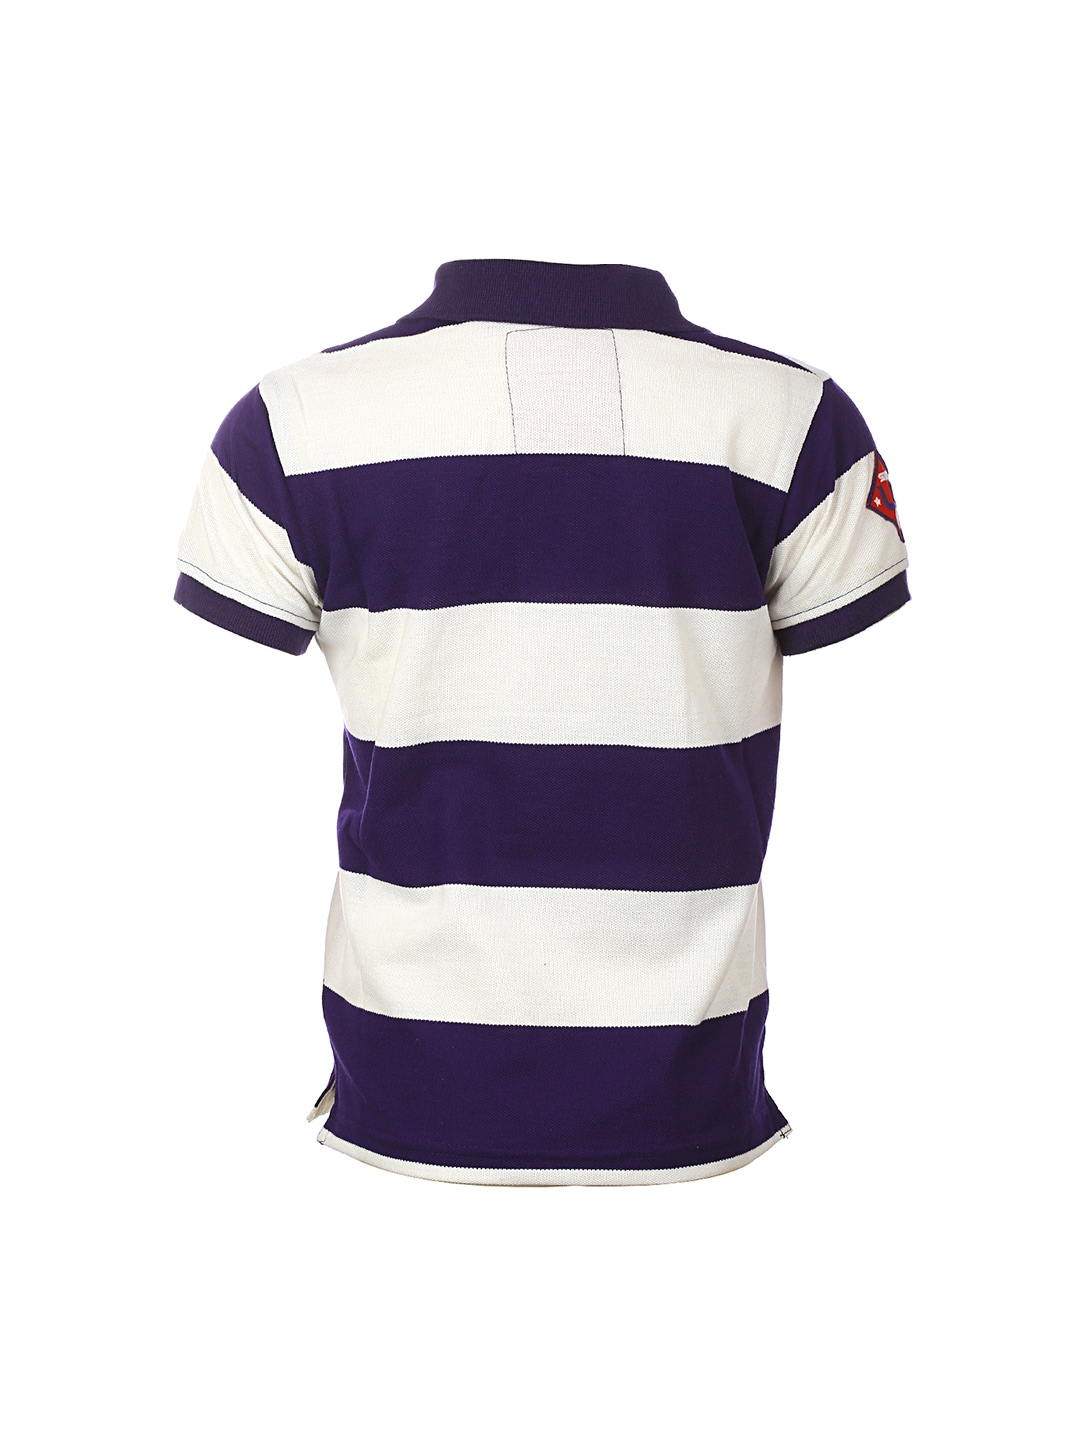 Myntra lumber boy purple white striped polo t shirt for Purple and black striped t shirt